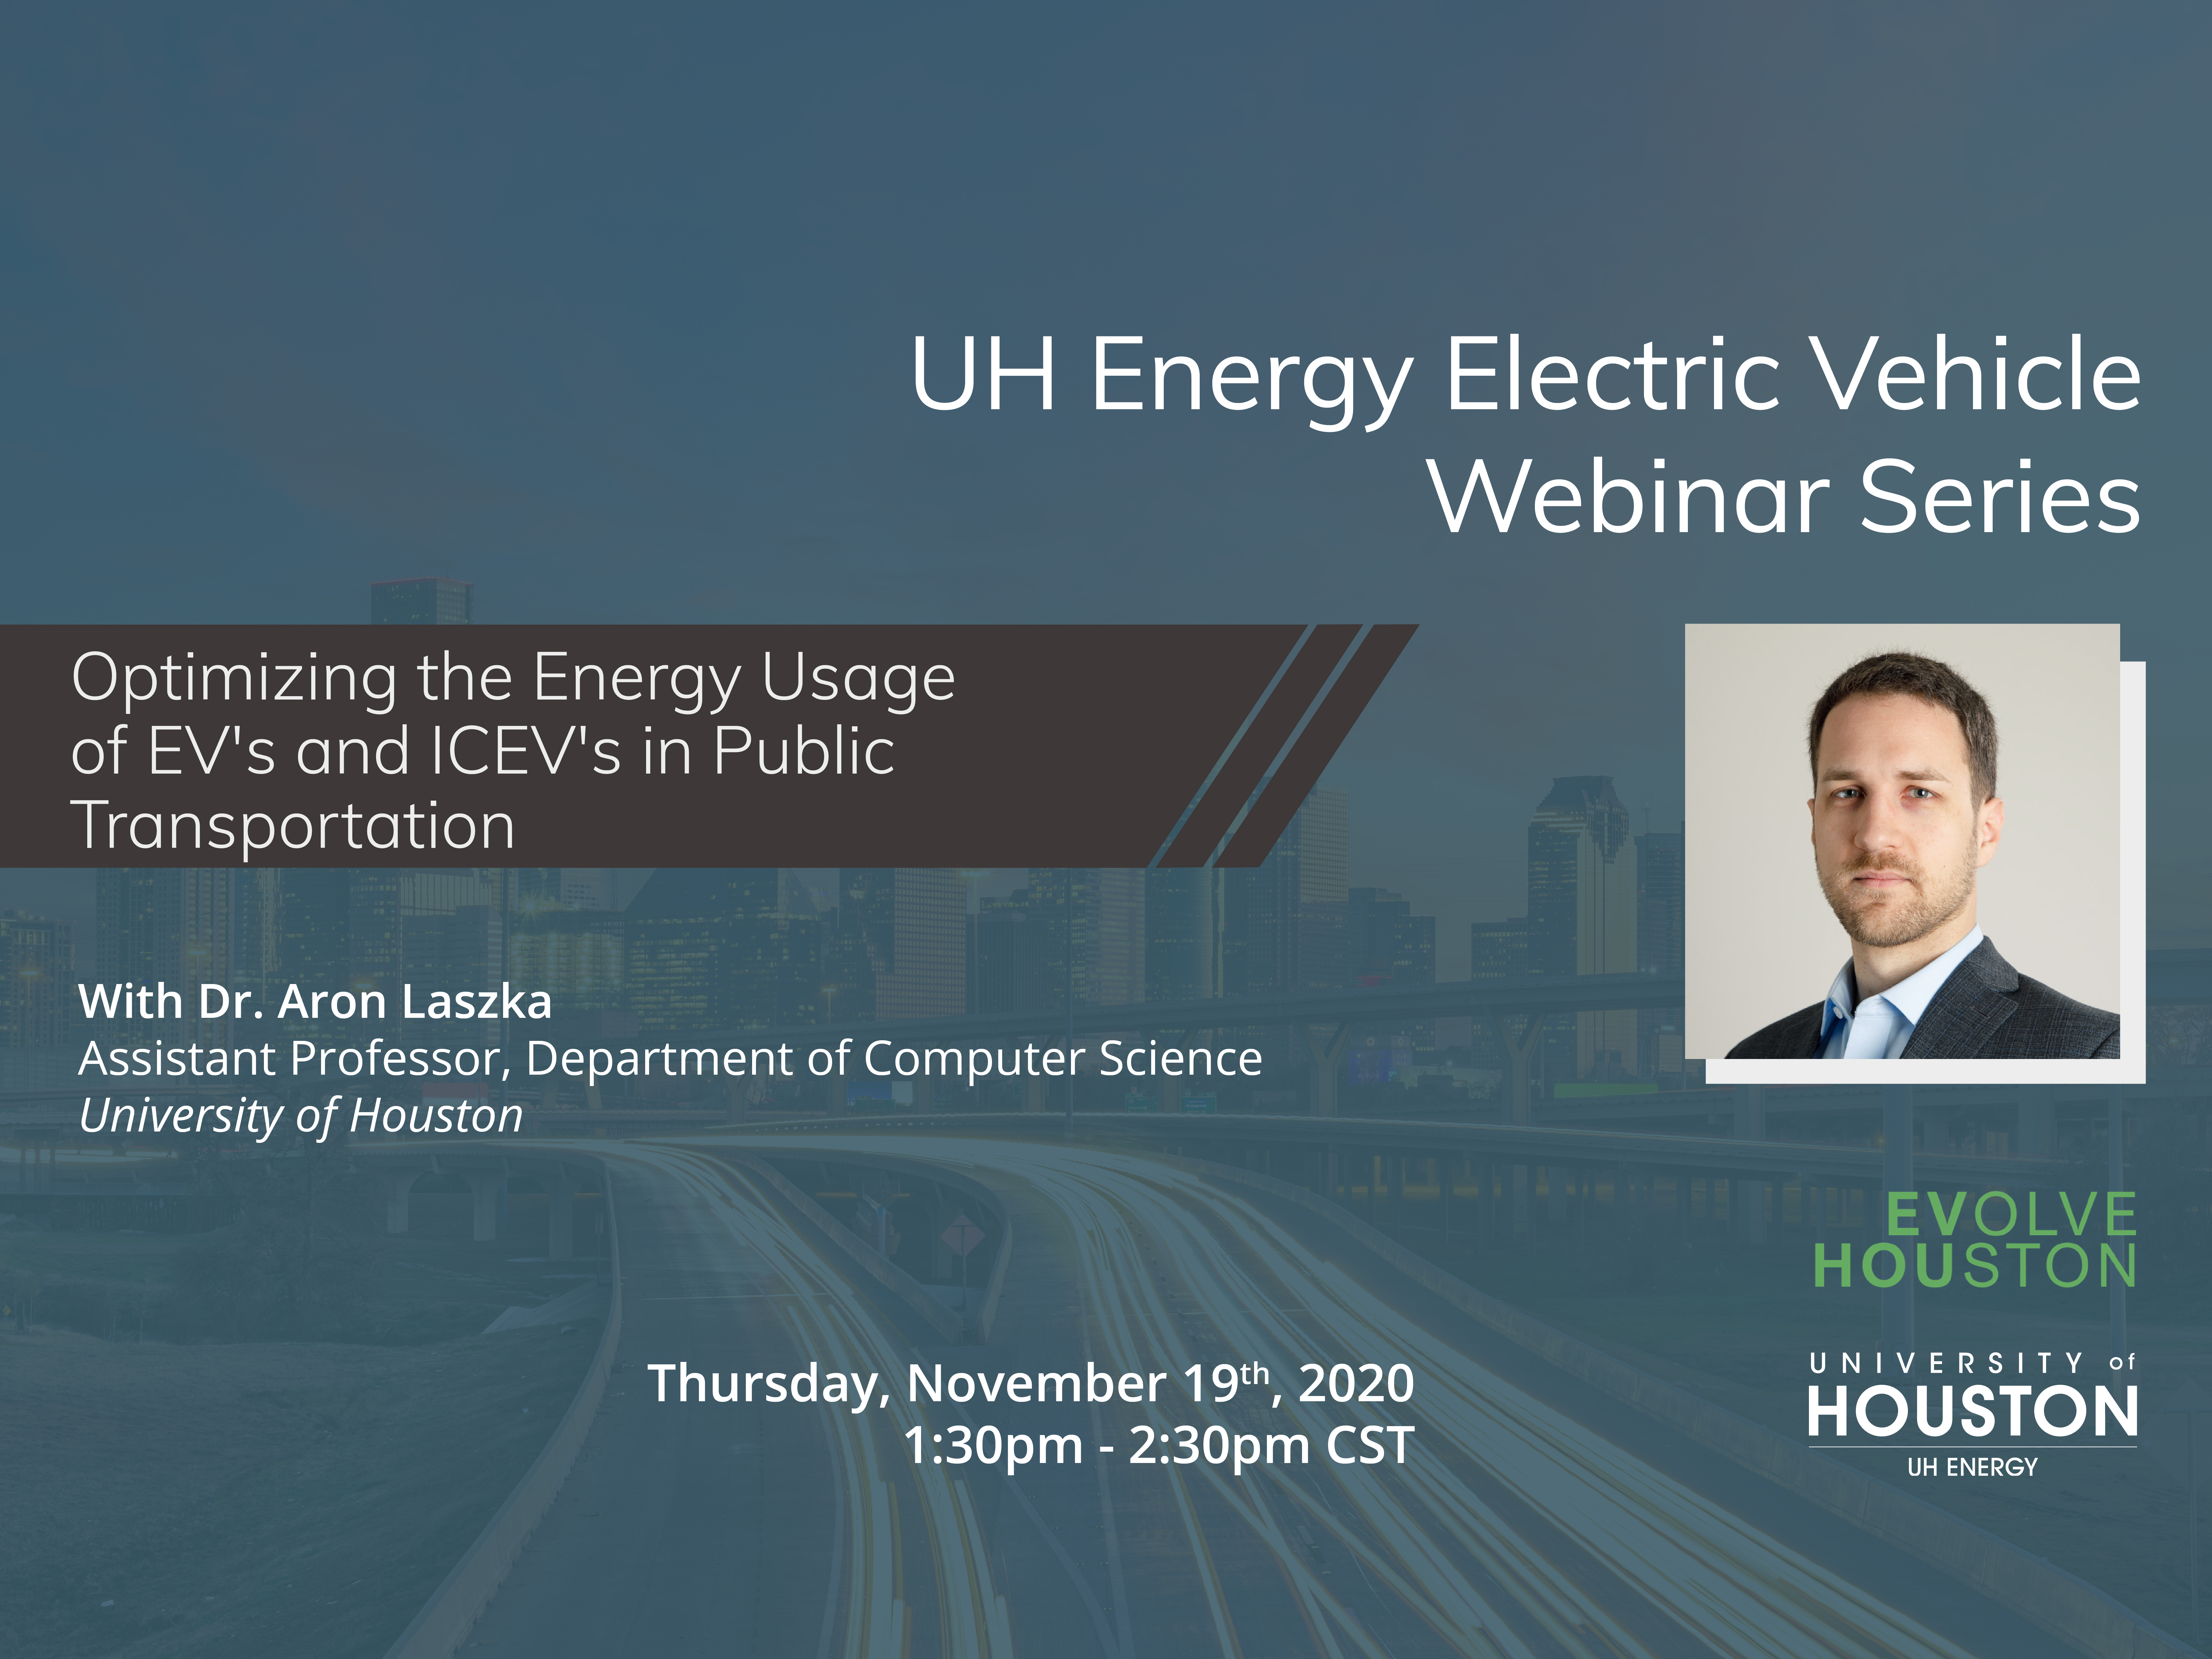 Optimizing the Energy Usage of EV's and ICEV's in Public Transportation Image